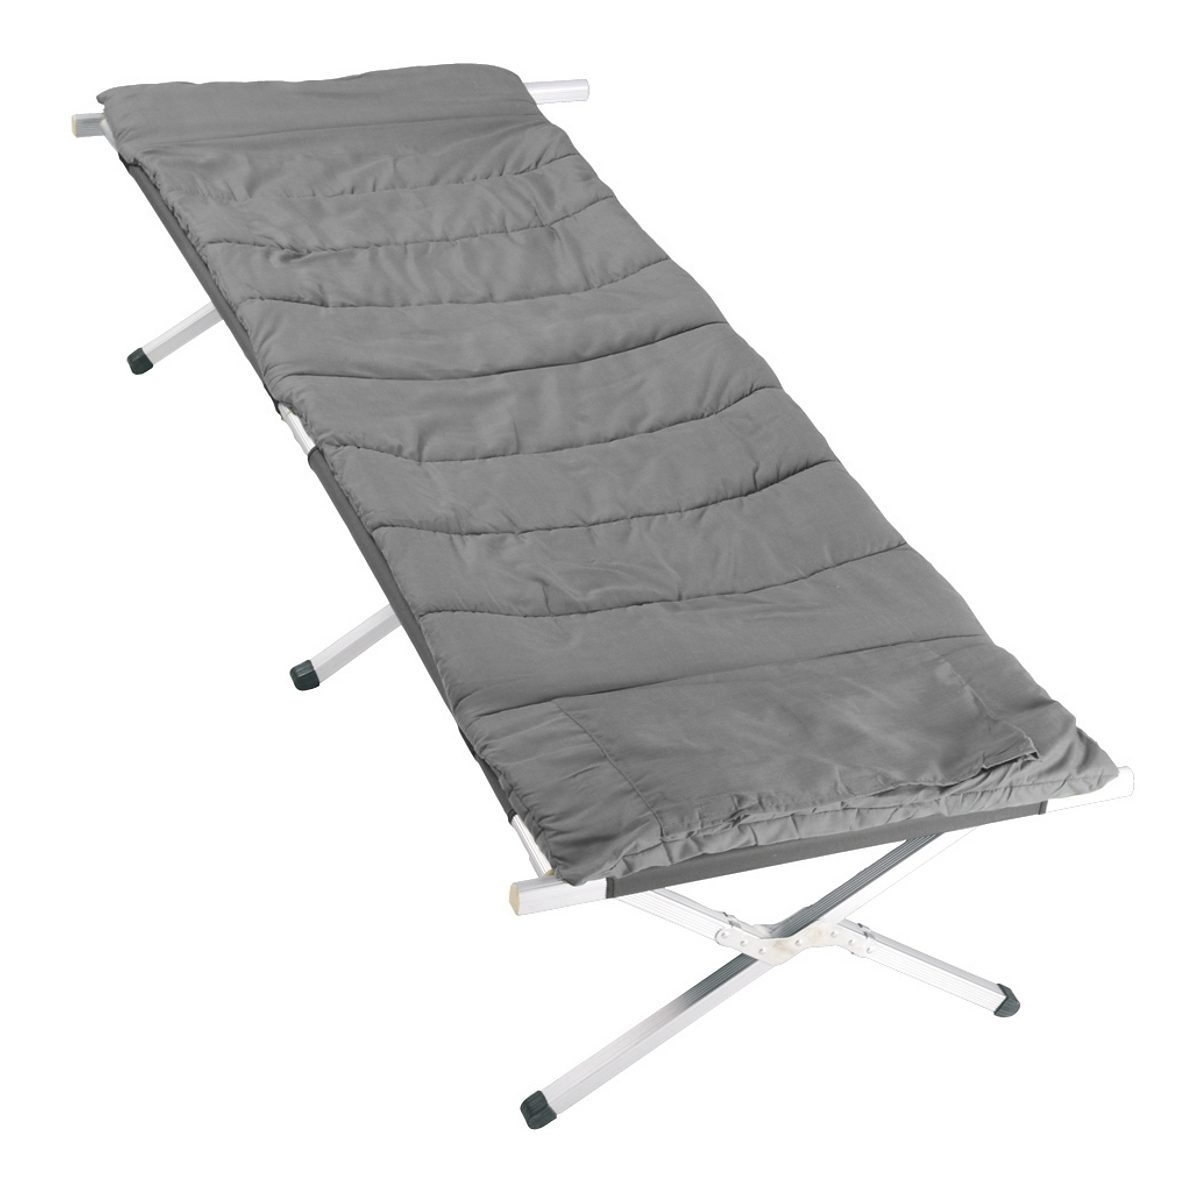 Grand Canyon Bett & Liegen »Camping Bed Cover M«